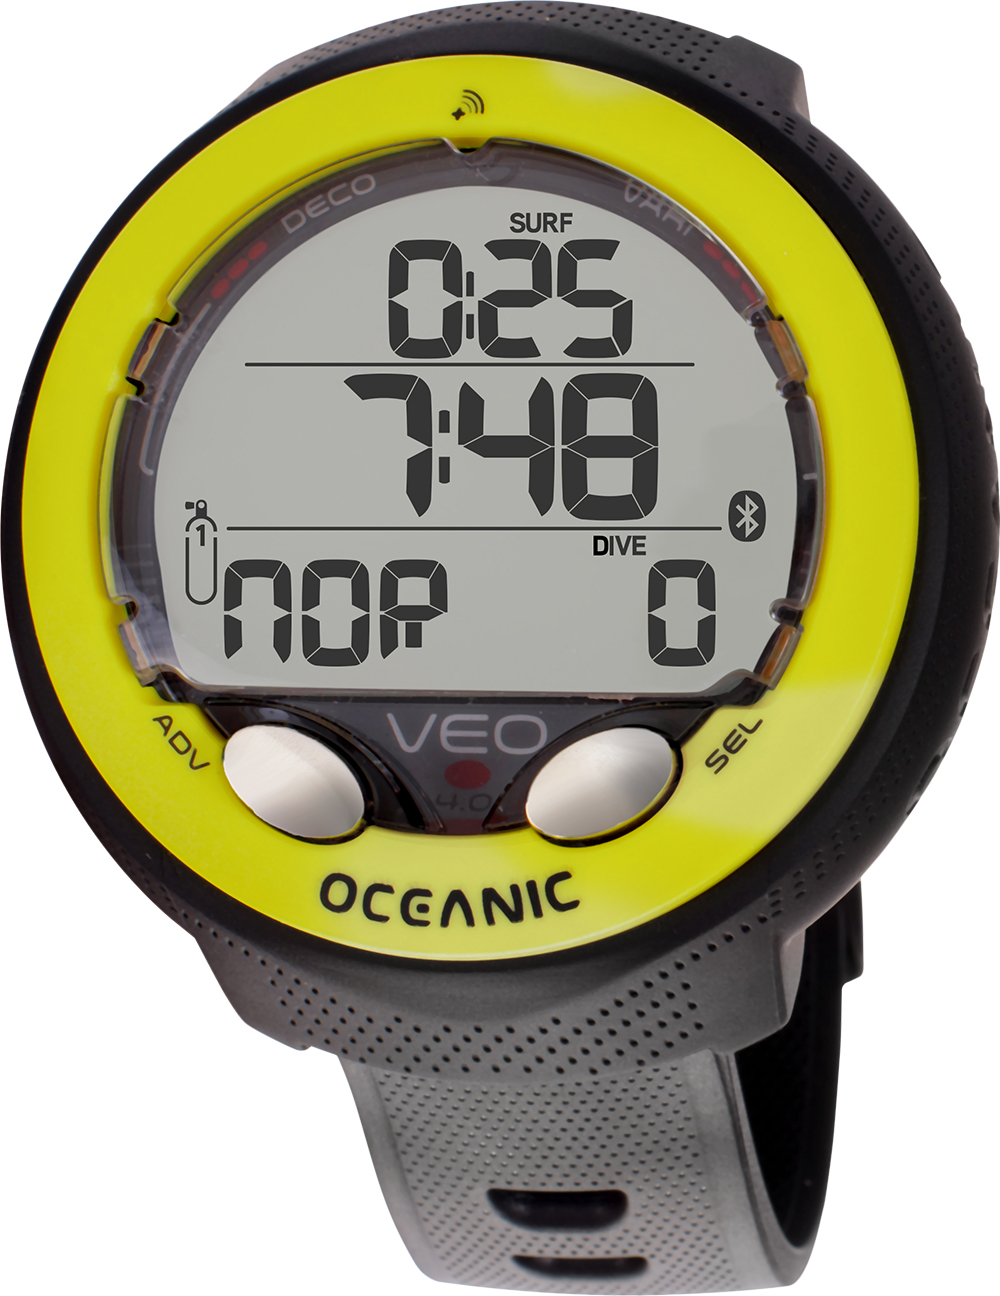 VEO-4.0Y-Oceanic-TECNOMAR-DIVING